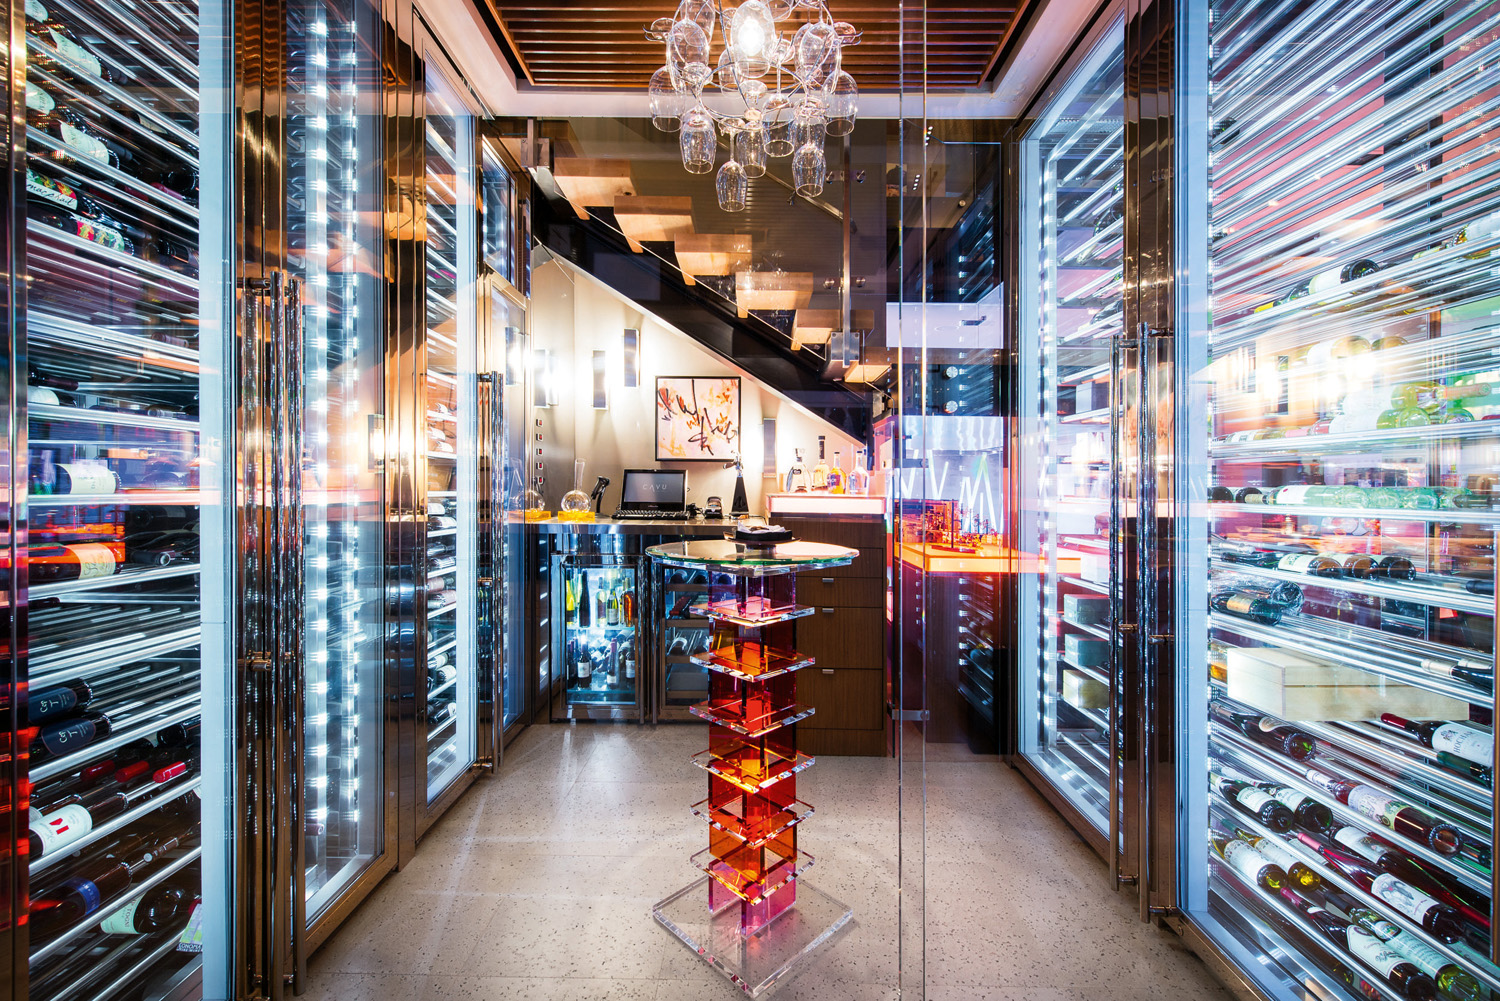 A wine cellar is illuminated to the max with lights